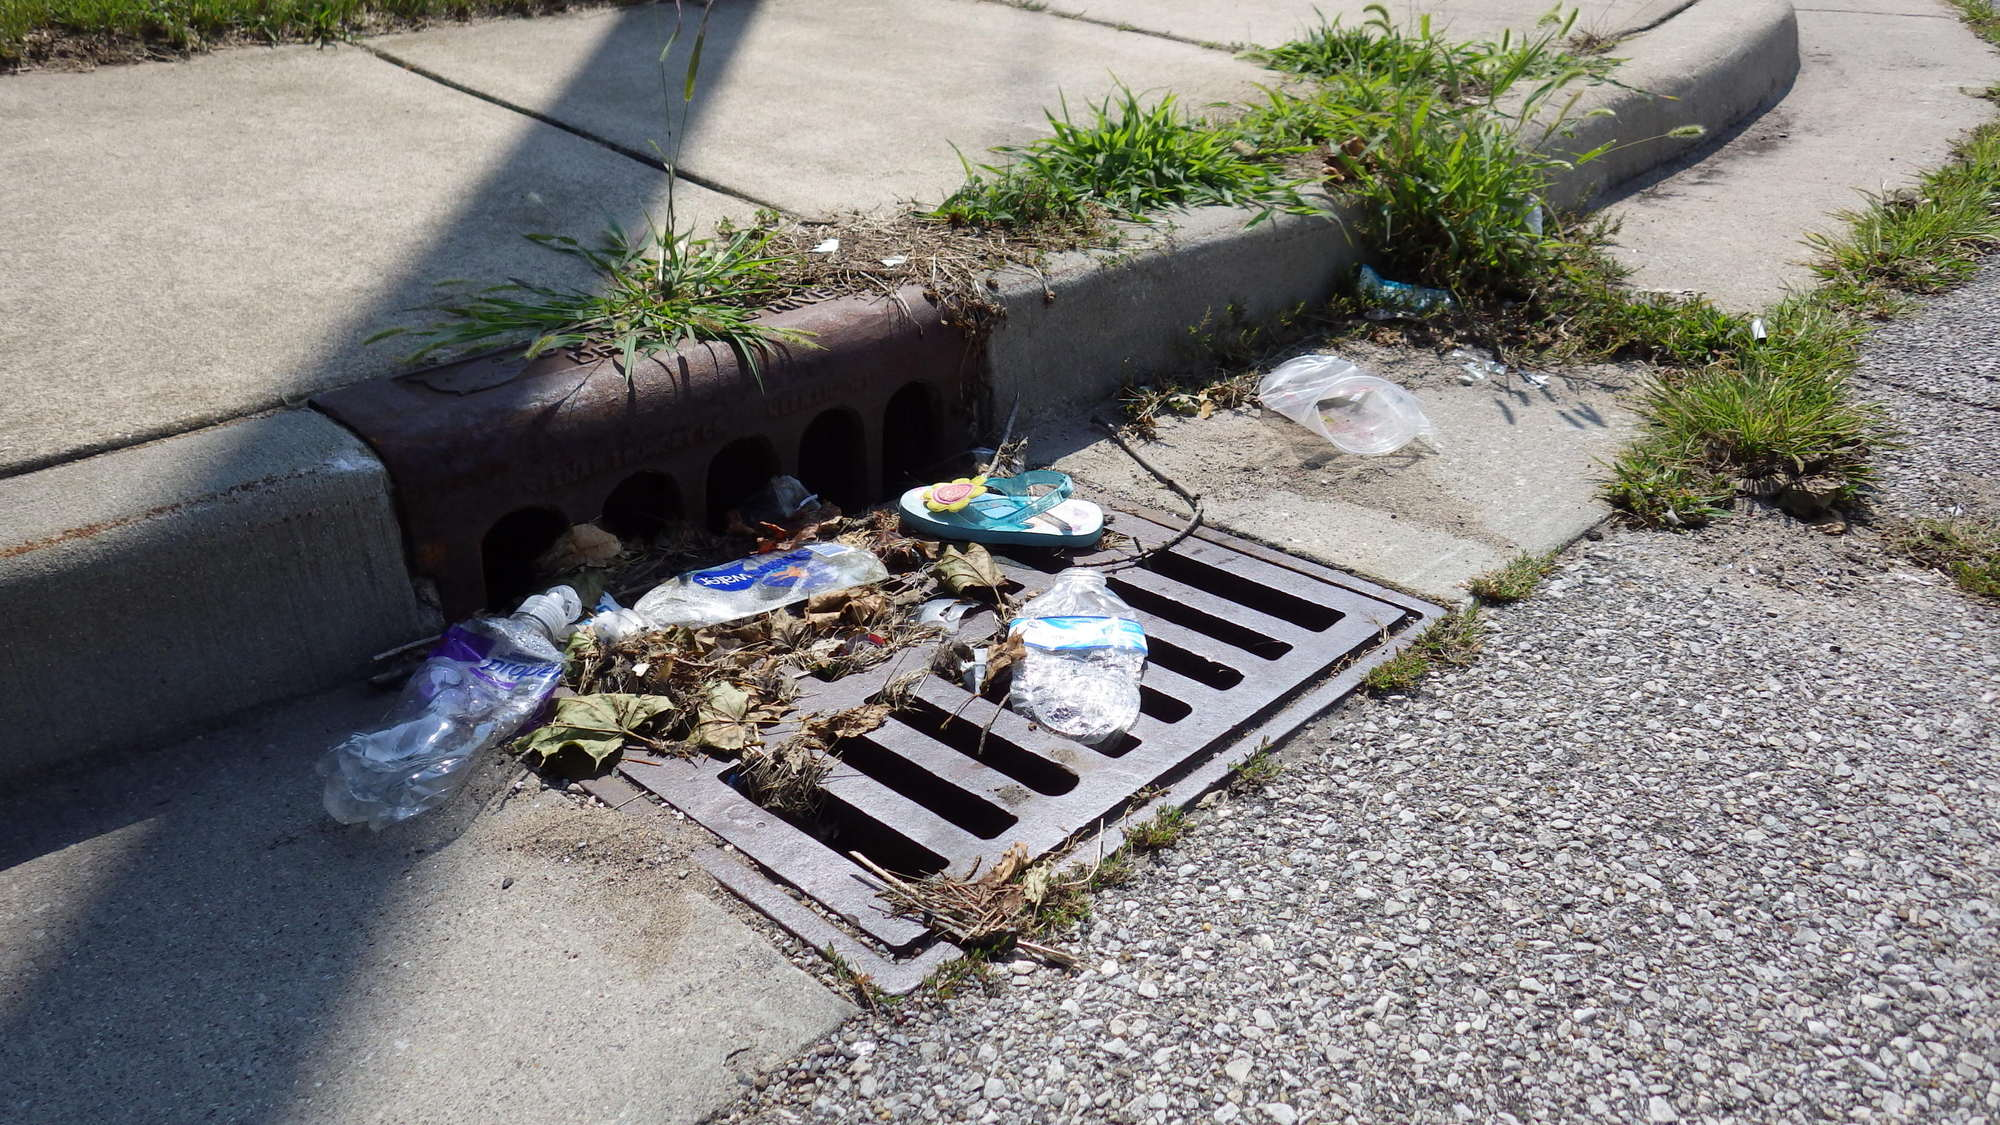 A neighborhood storm drain and litter that has been washed to it.